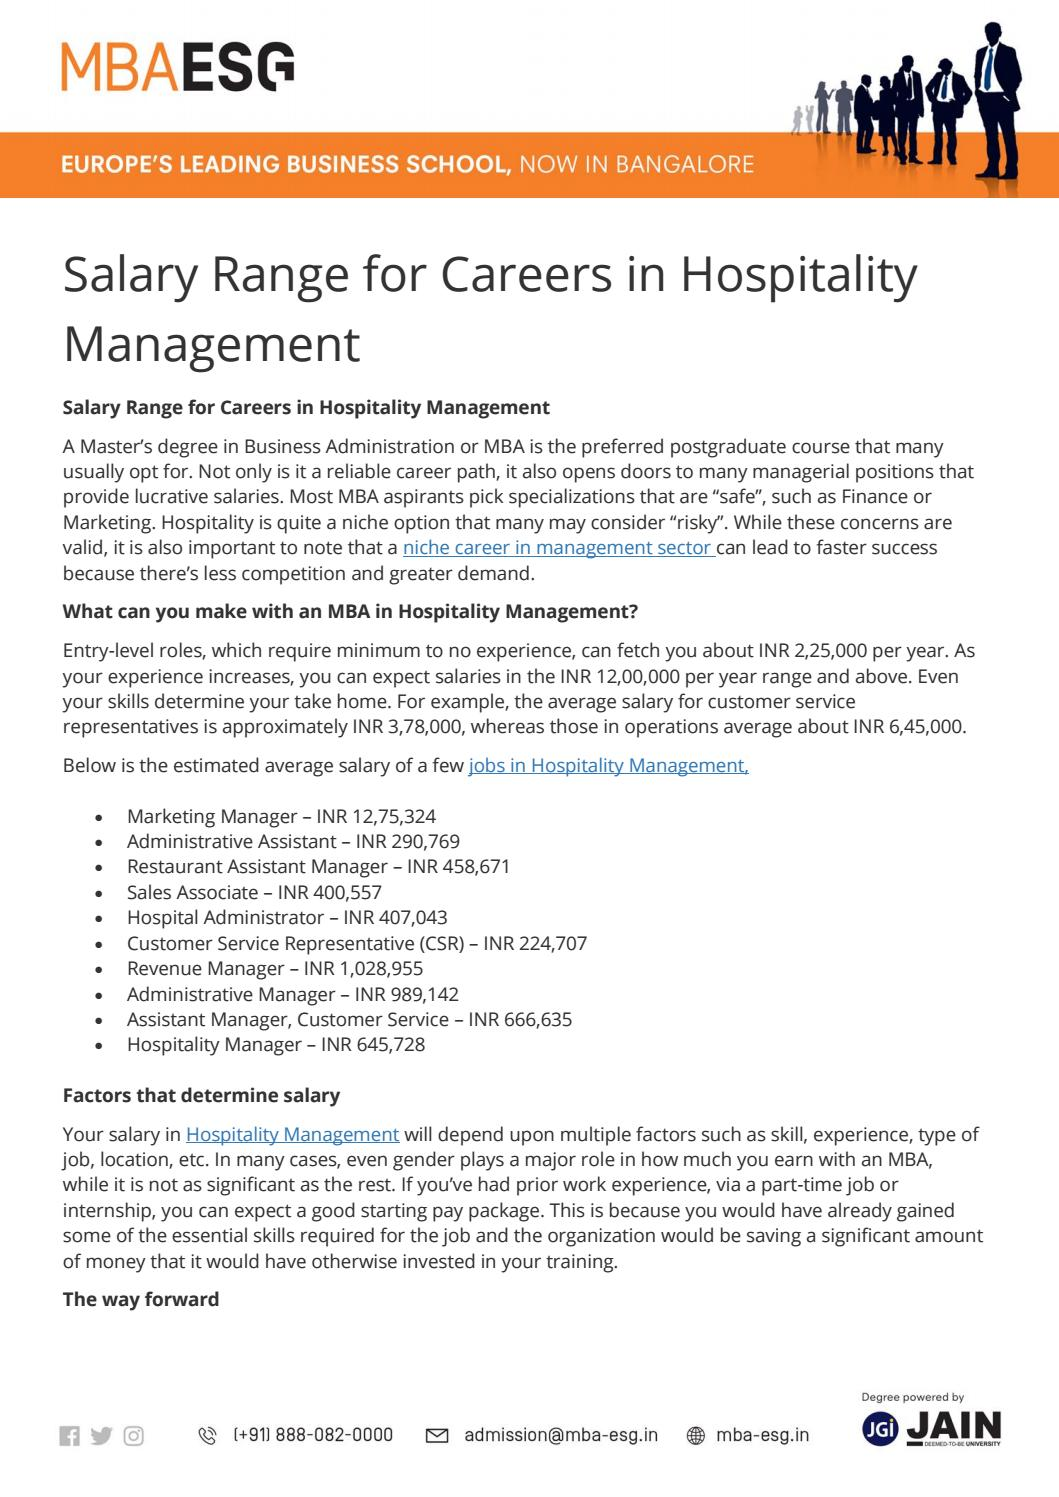 Salary Range for Careers in Hospitality Management by MBA